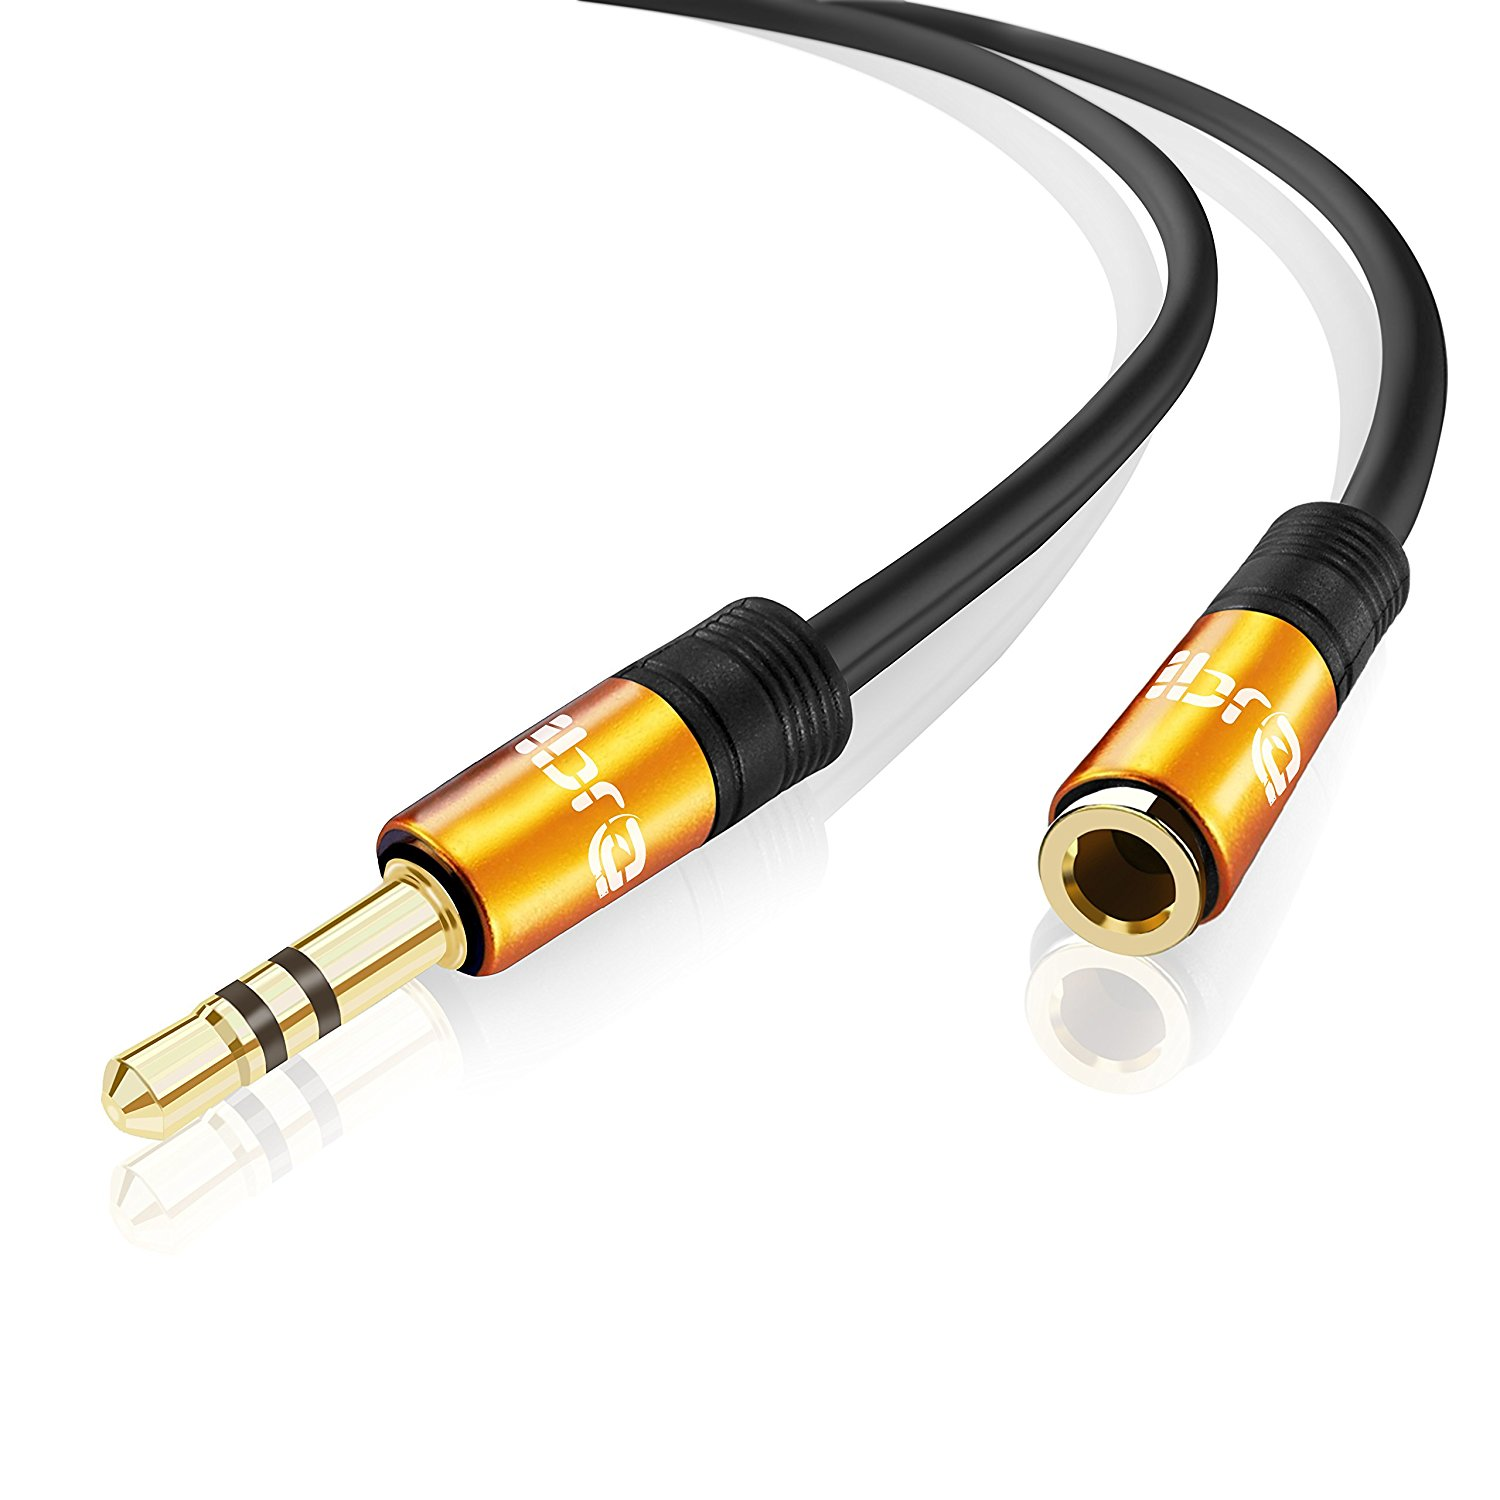 IBRA 1M Stereo Jack Extension Cable 3.5mm Male > 3.5mm Female - Orange